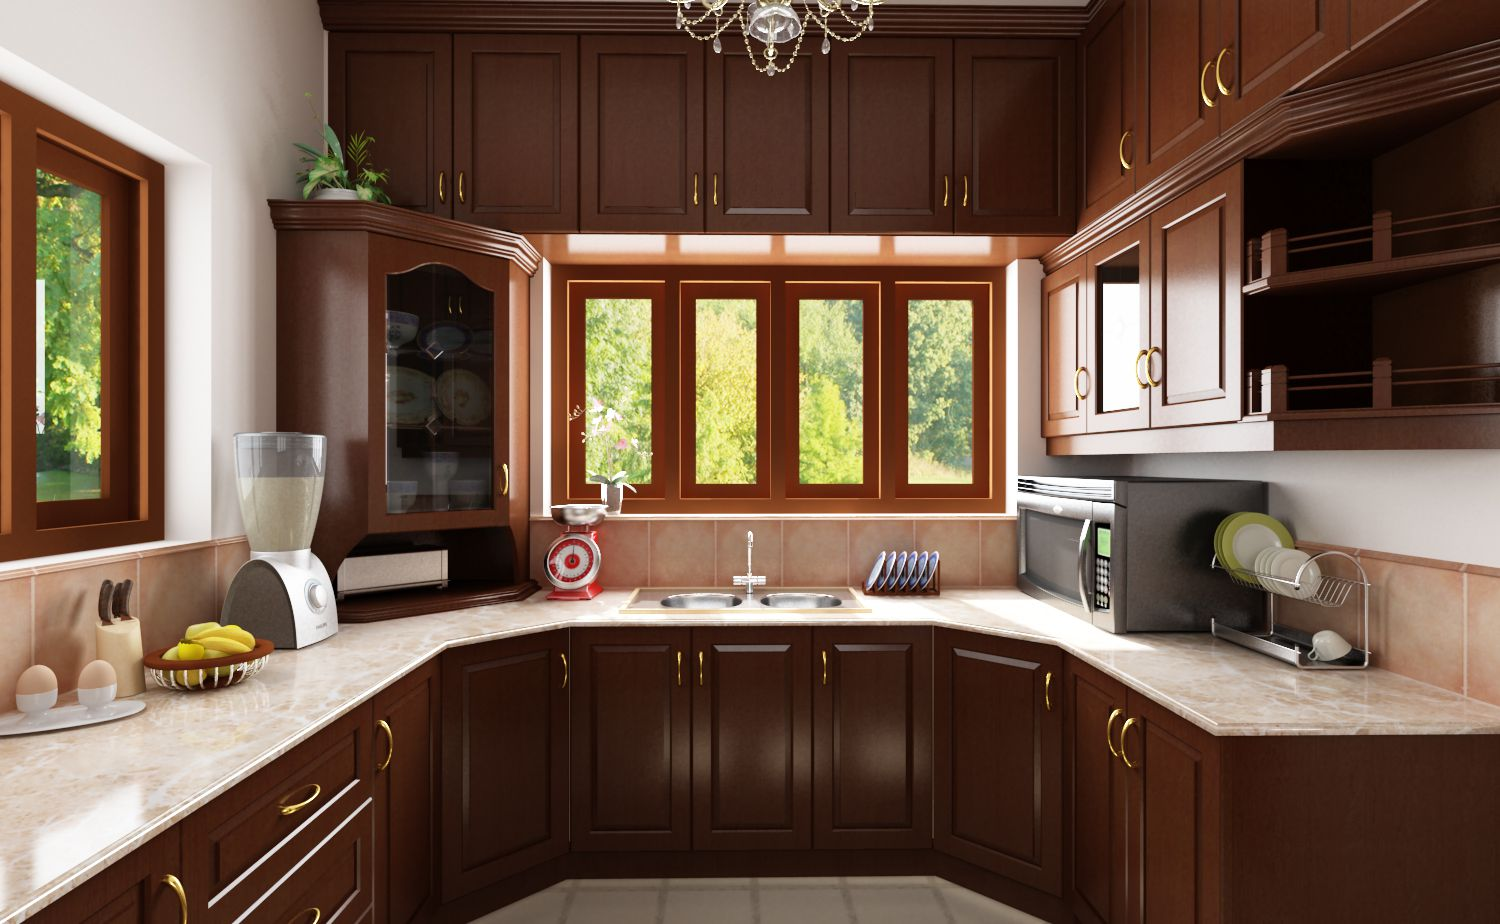 Simple kitchen designs in india for elegance cooking spot for Indian style kitchen design